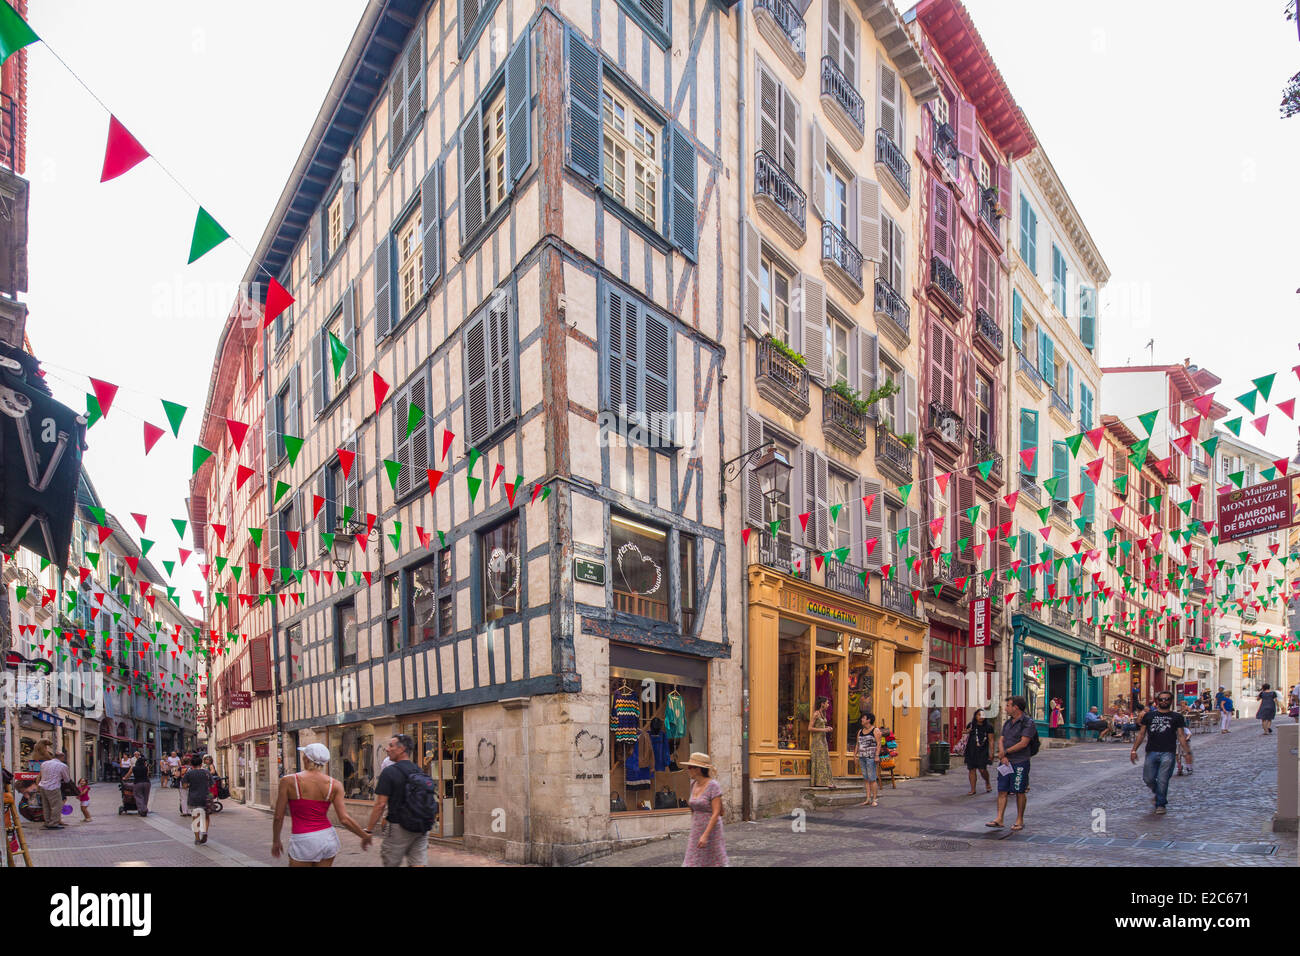 France, Pyrenees Atlantiques, Bayonne,traditional architecture of the pedestrian streets of the city center - Stock Image